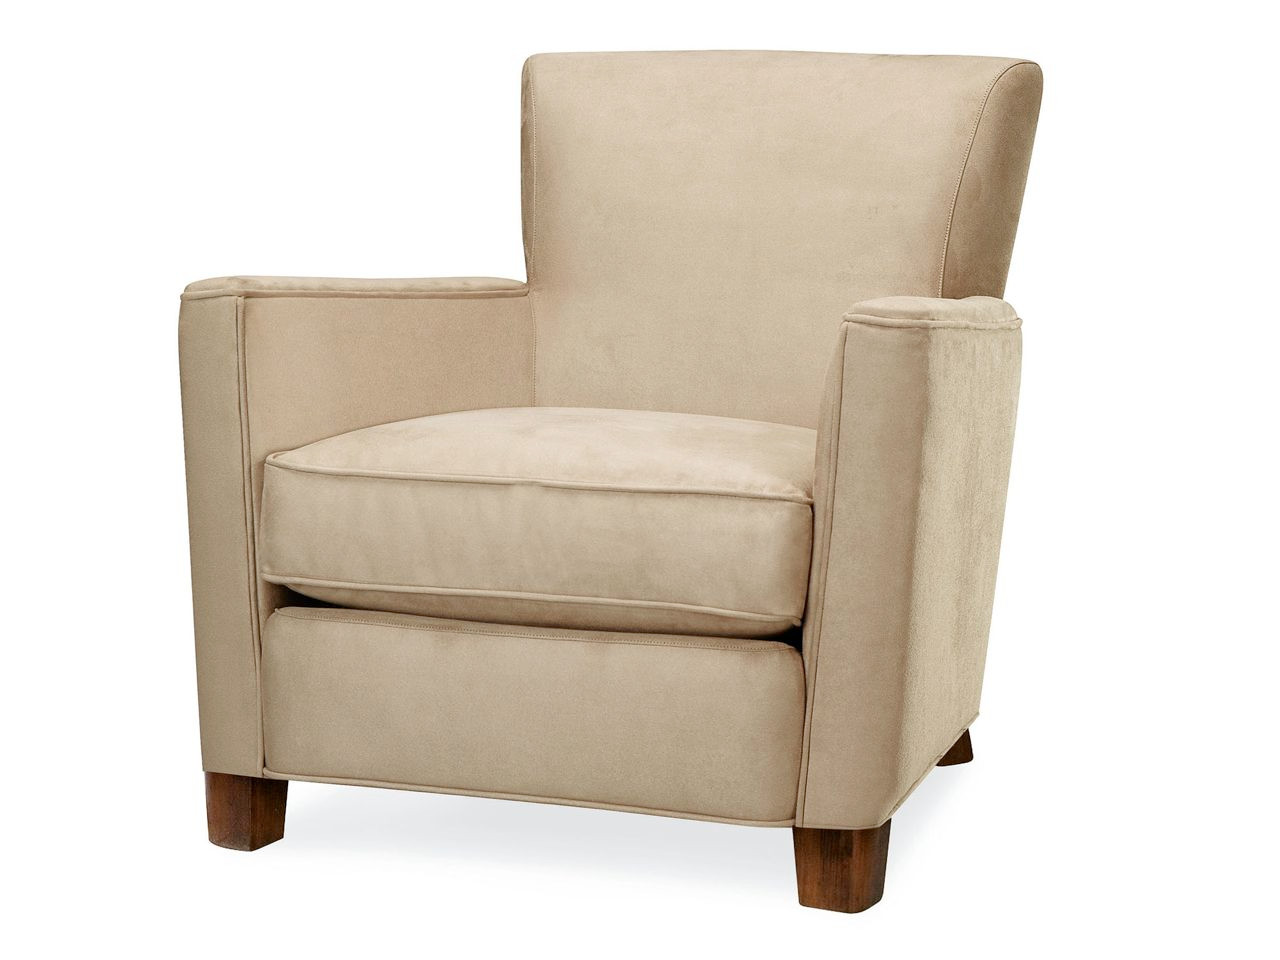 Jason Chair Armchairs Living Room Chairs Accent Chairs